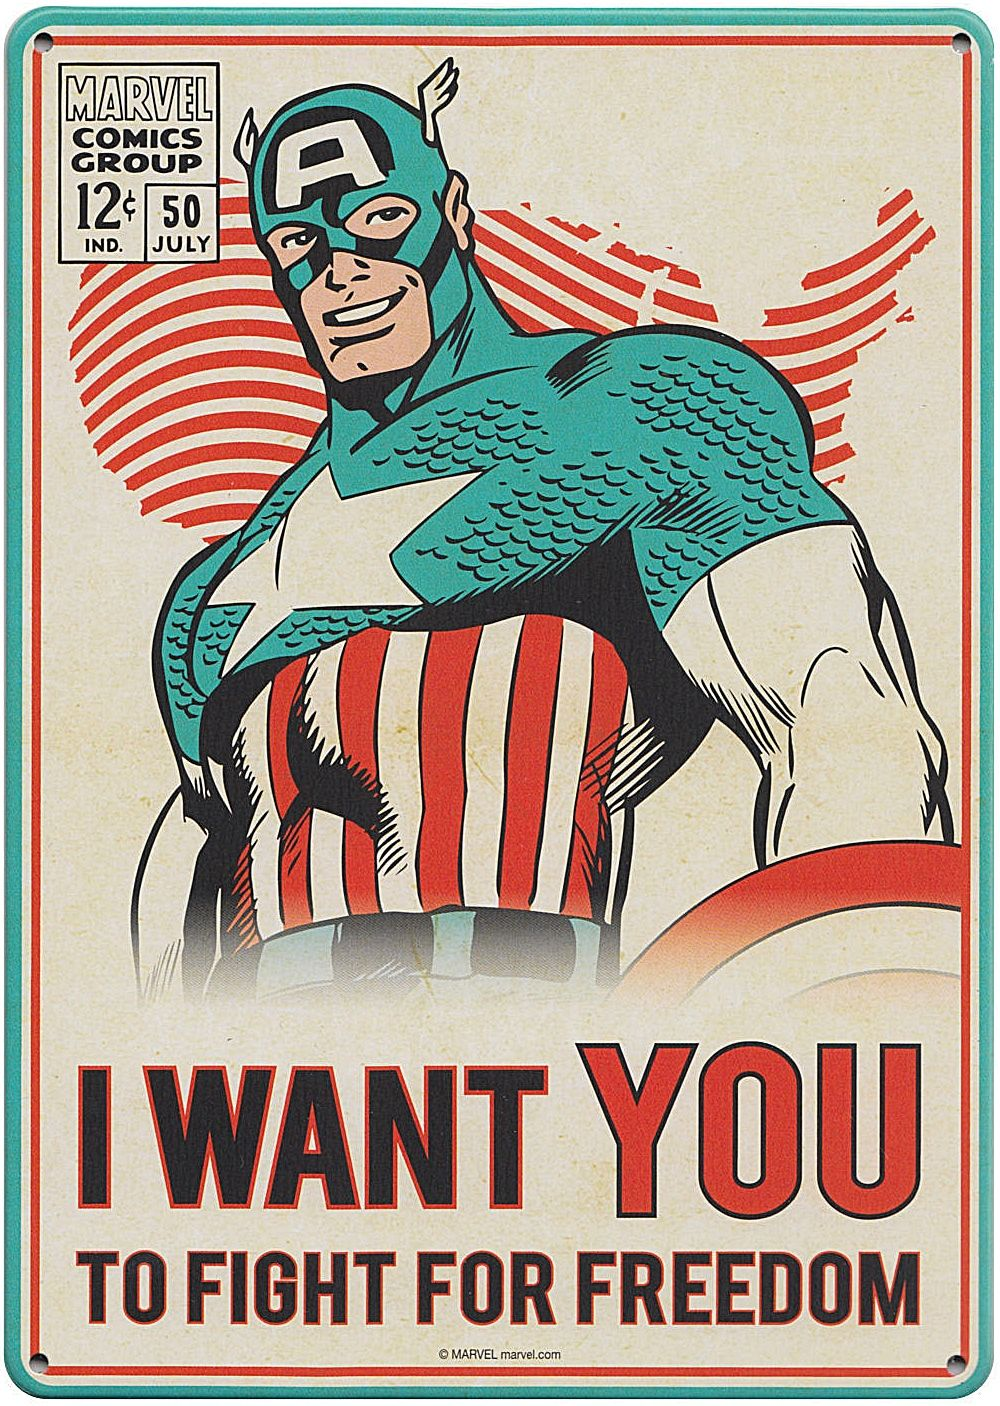 captain-america-i-want-you-to-fight-for-freedom-small-steel-sign-210mm-x-150mm-hb--13765-p